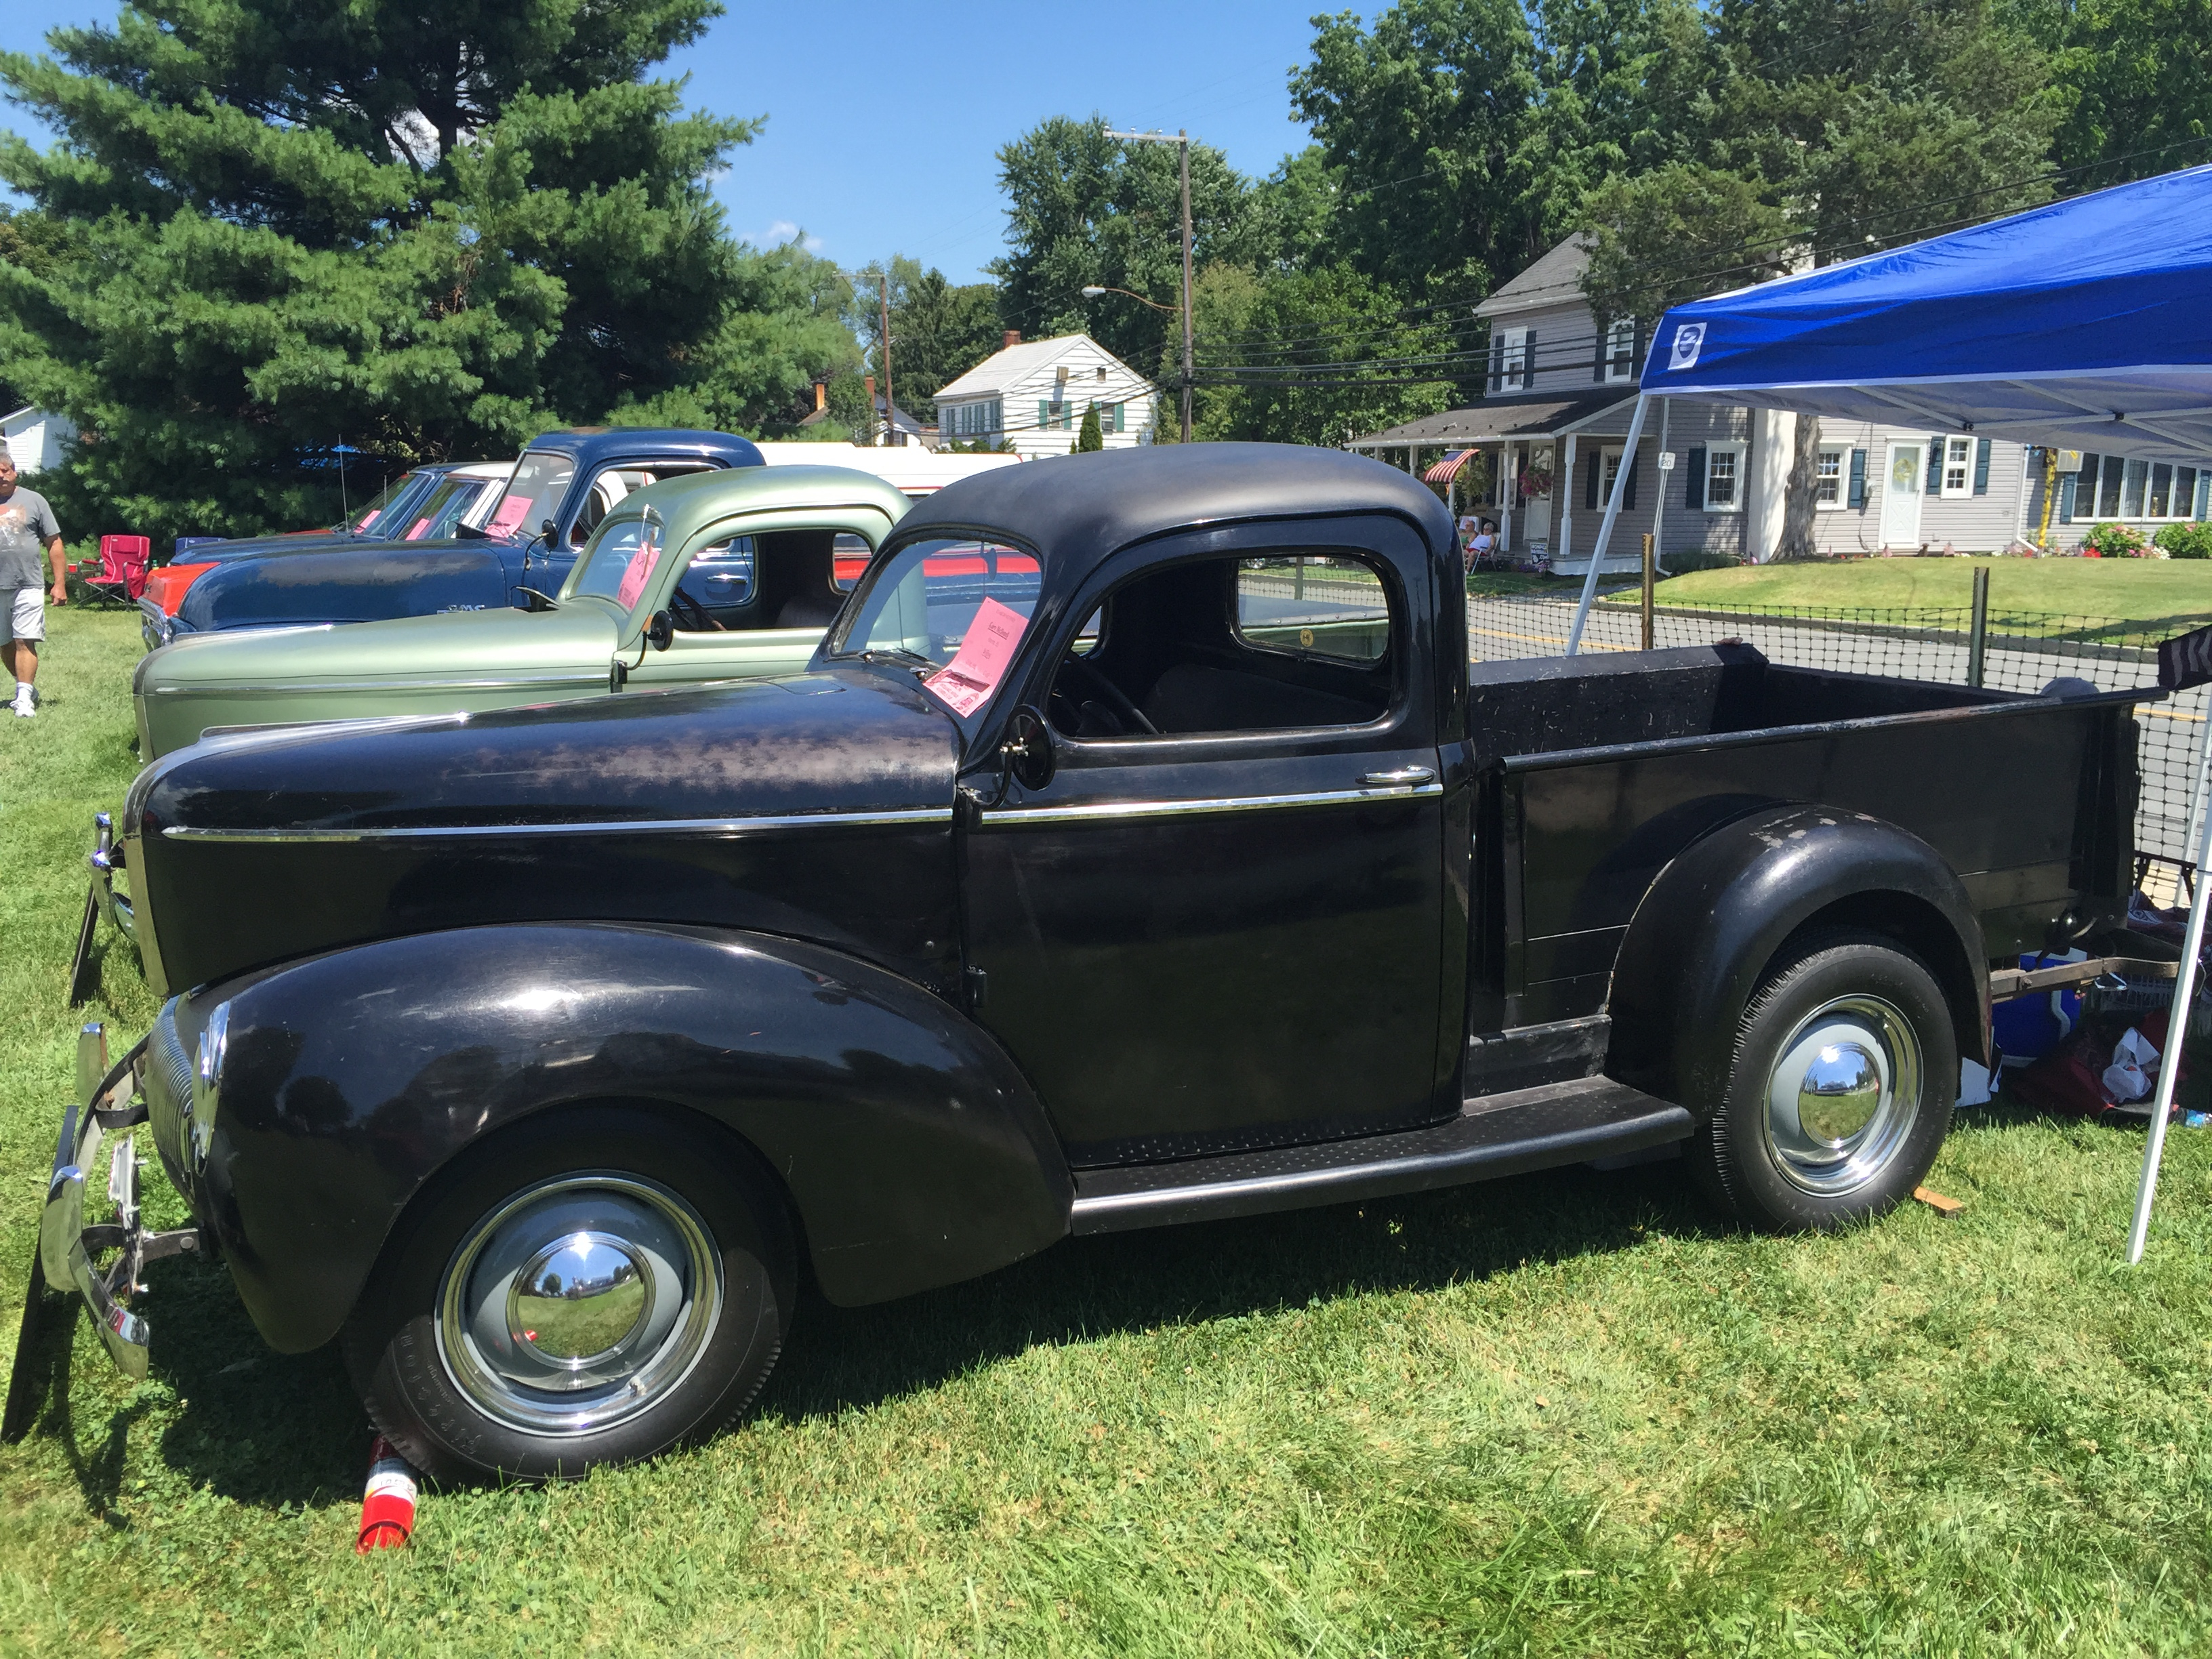 file 1941 willys americar pickup truck at 2015 macungie show 2of3 1949 Willys Pickup Trucks file 1941 willys americar pickup truck at 2015 macungie show 2of3